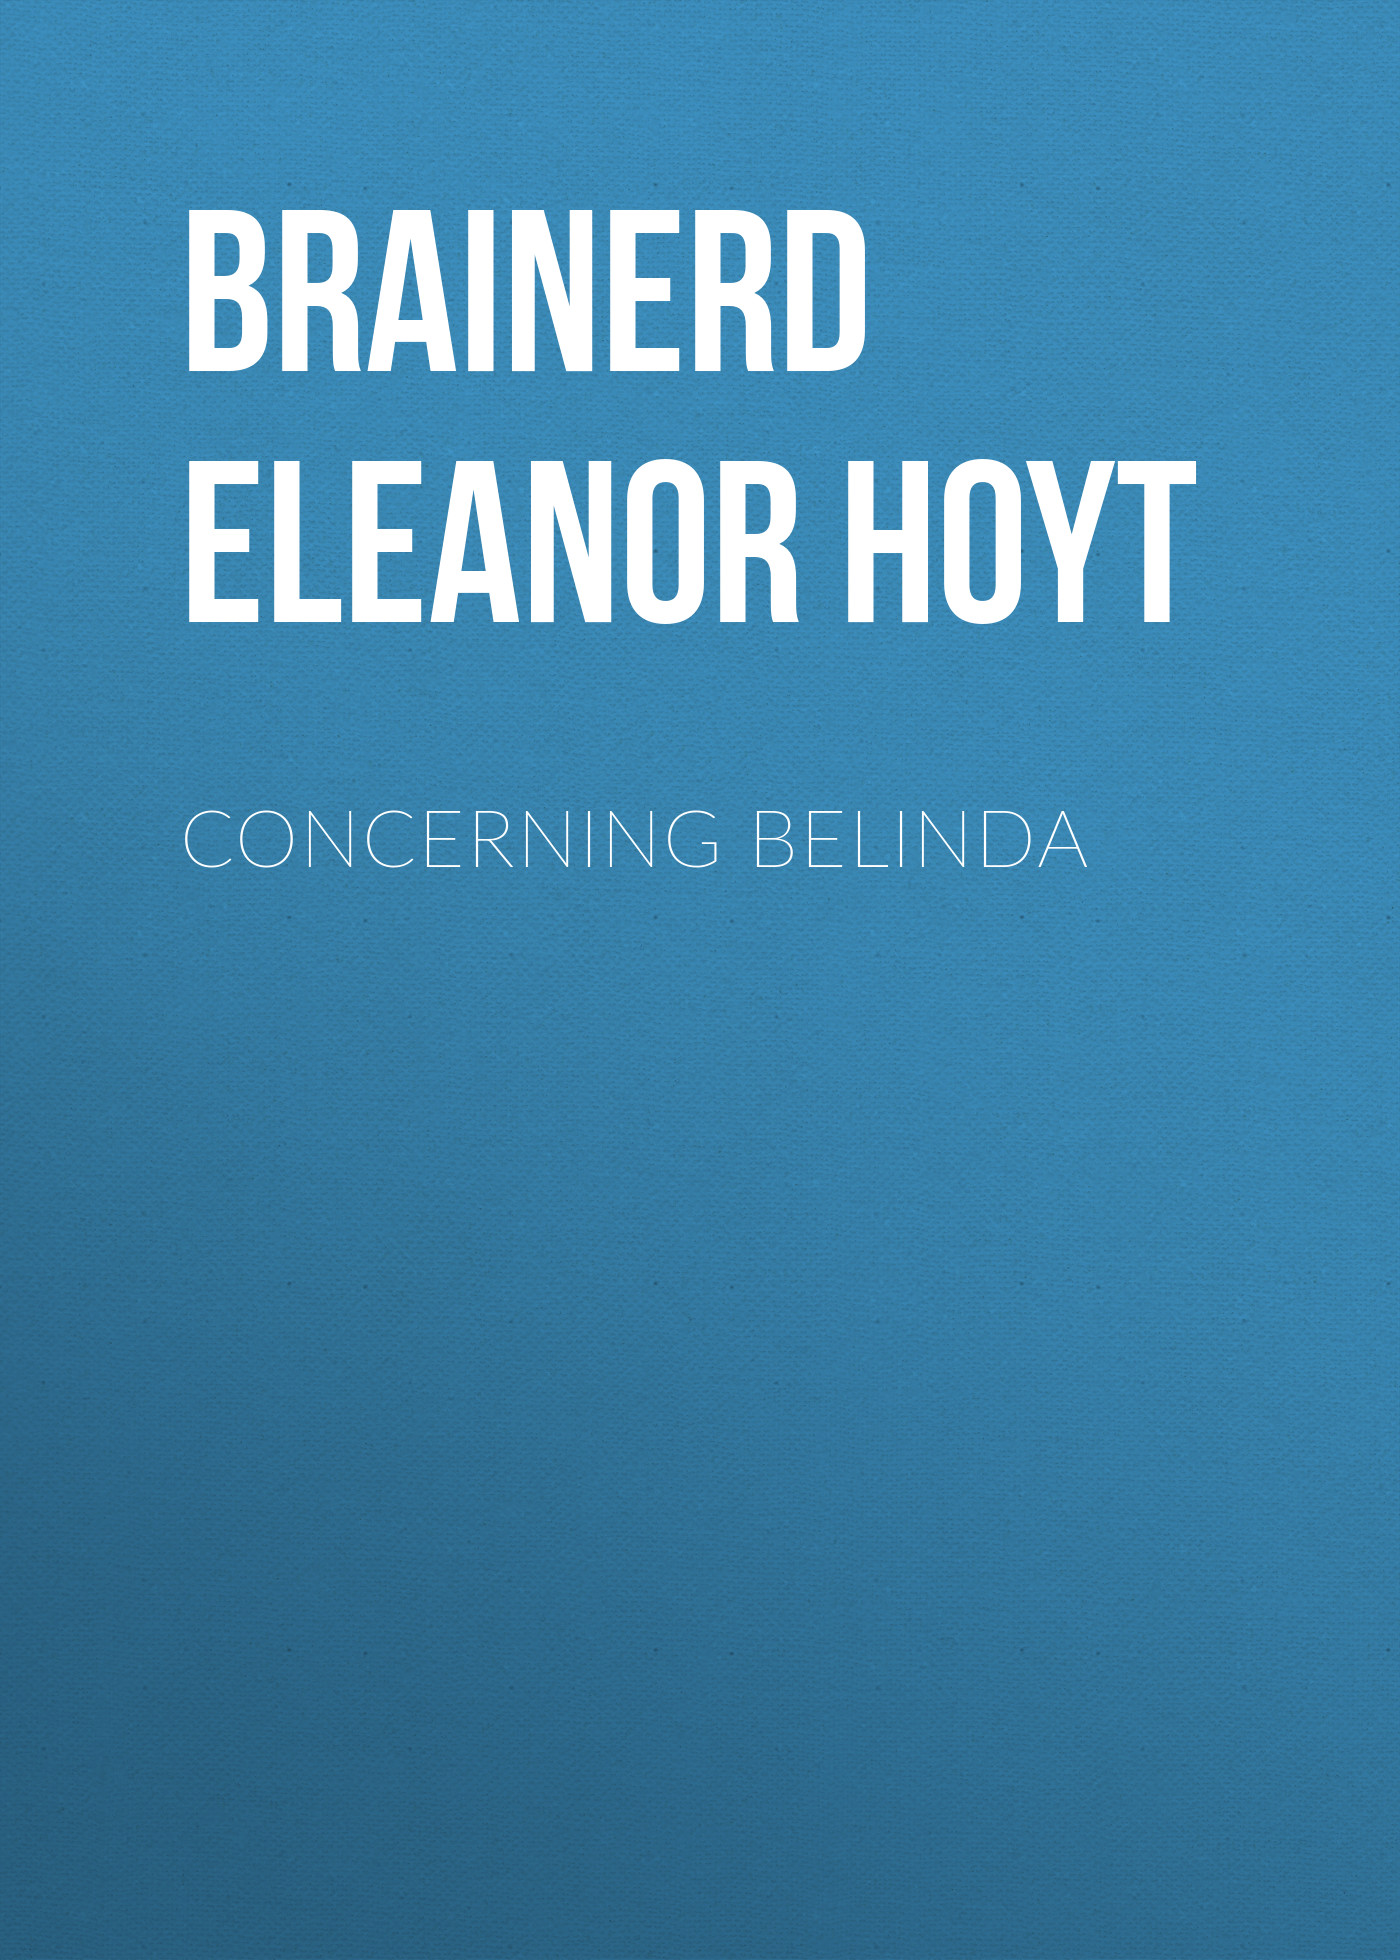 Brainerd Eleanor Hoyt Concerning Belinda bohemia art classic настольная лампа bohemia art classic 12 26 3 141 37 br b